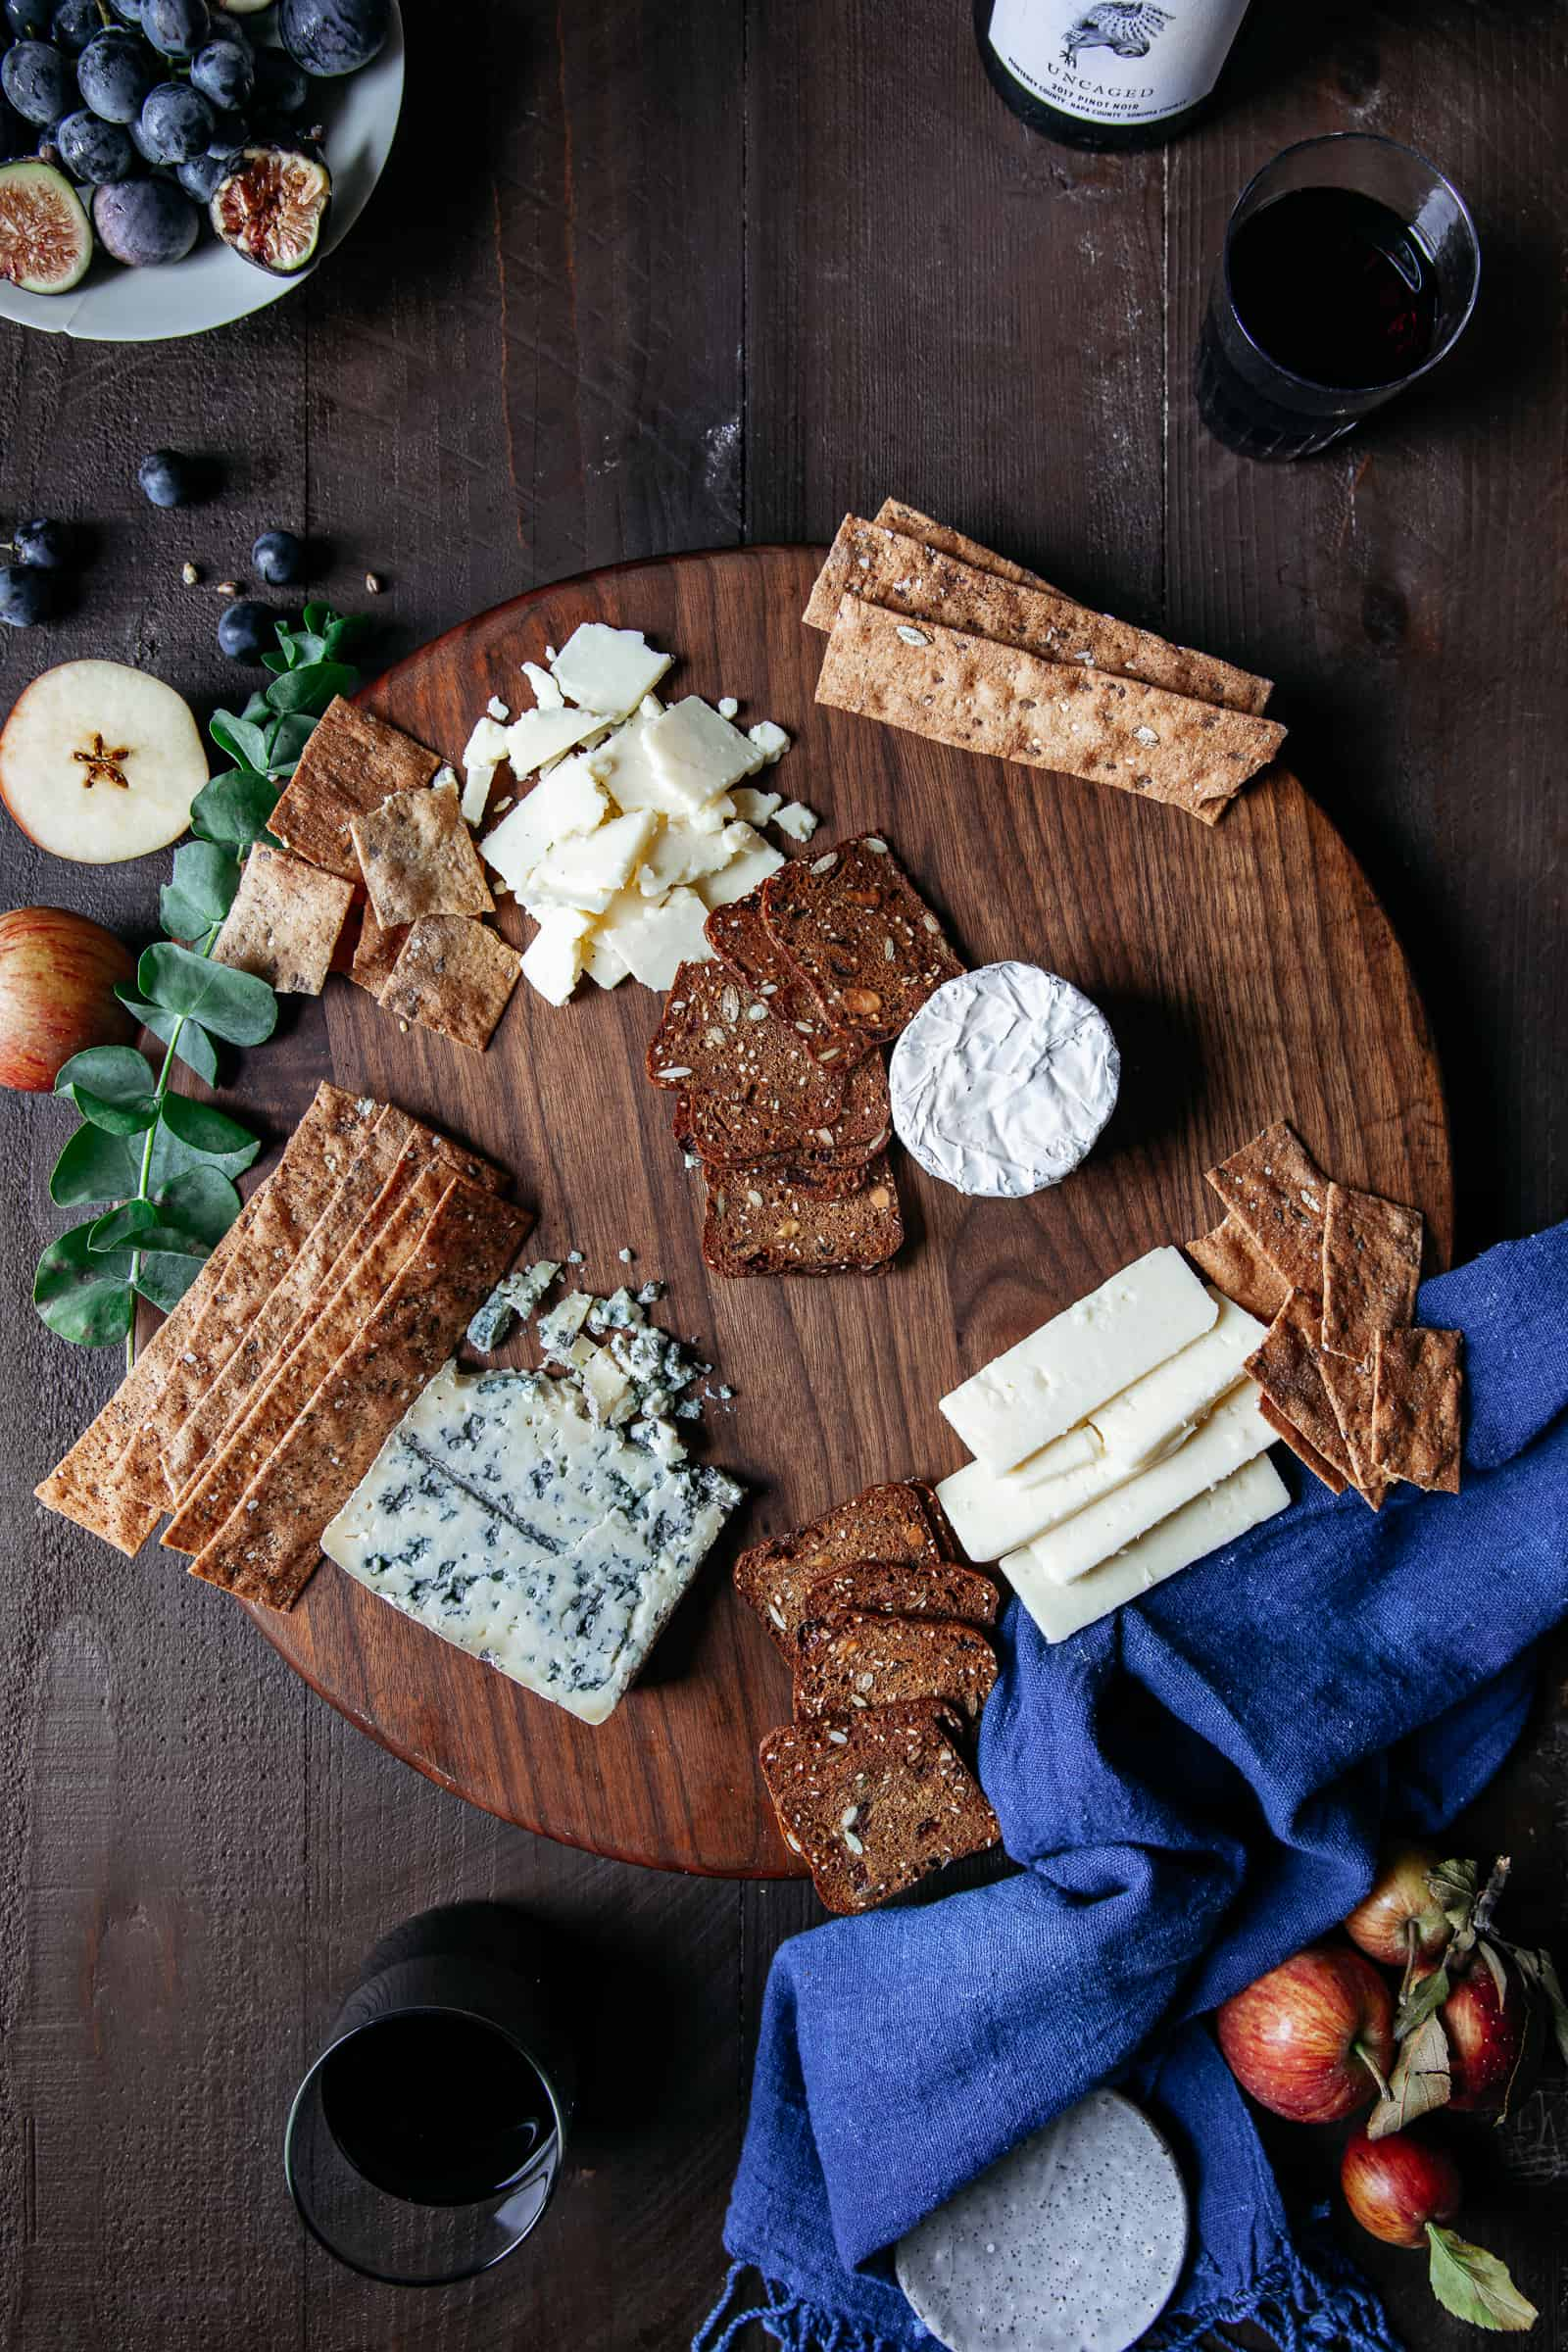 Cheeseboard Styling Step 2 — Add the crackers